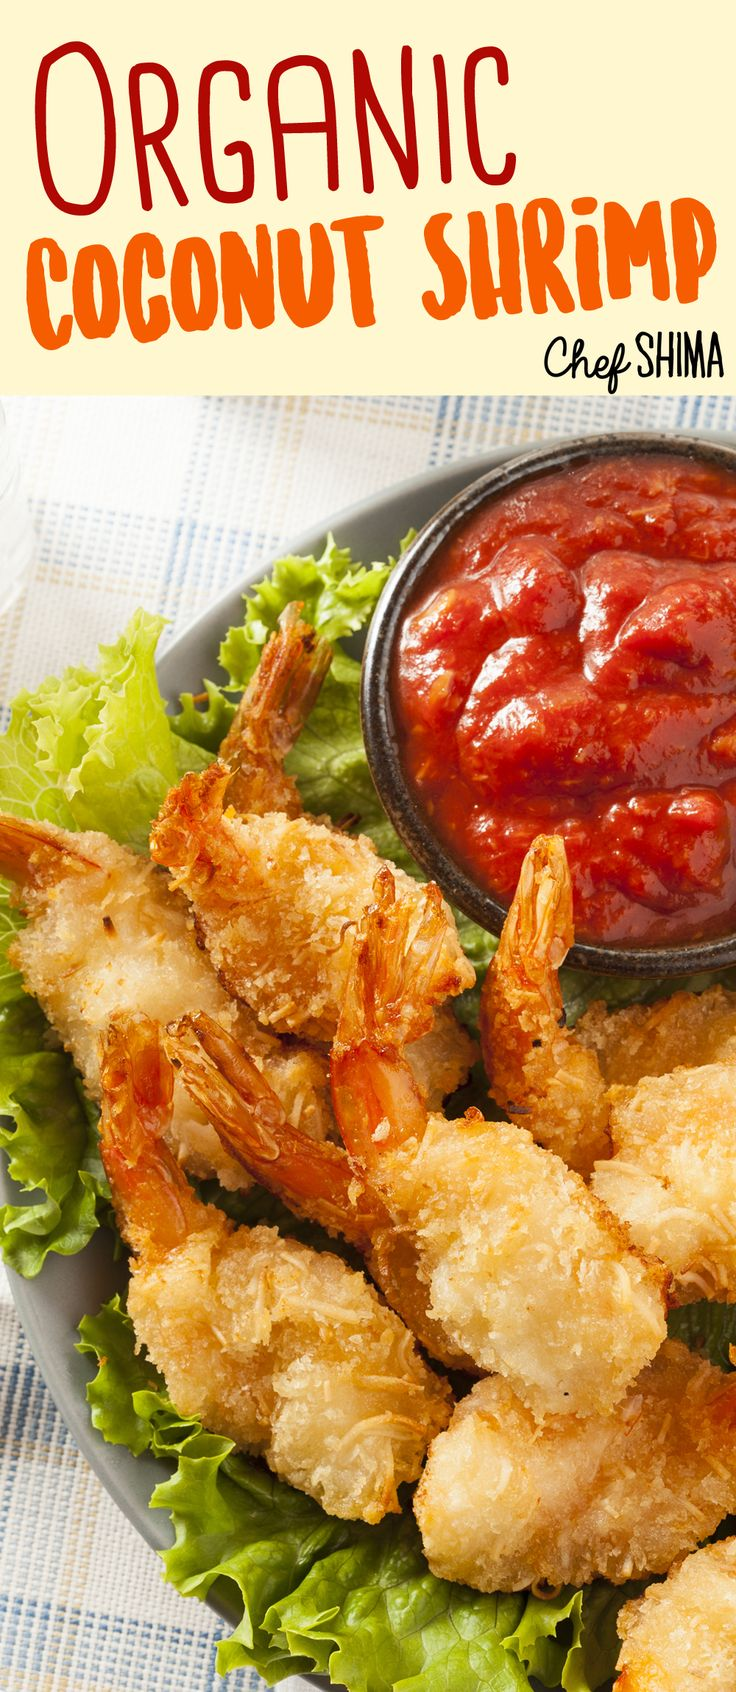 Organic Coconut Shrimp | Healthy and delicious Coconut Shrimp... MMM YUMMY!